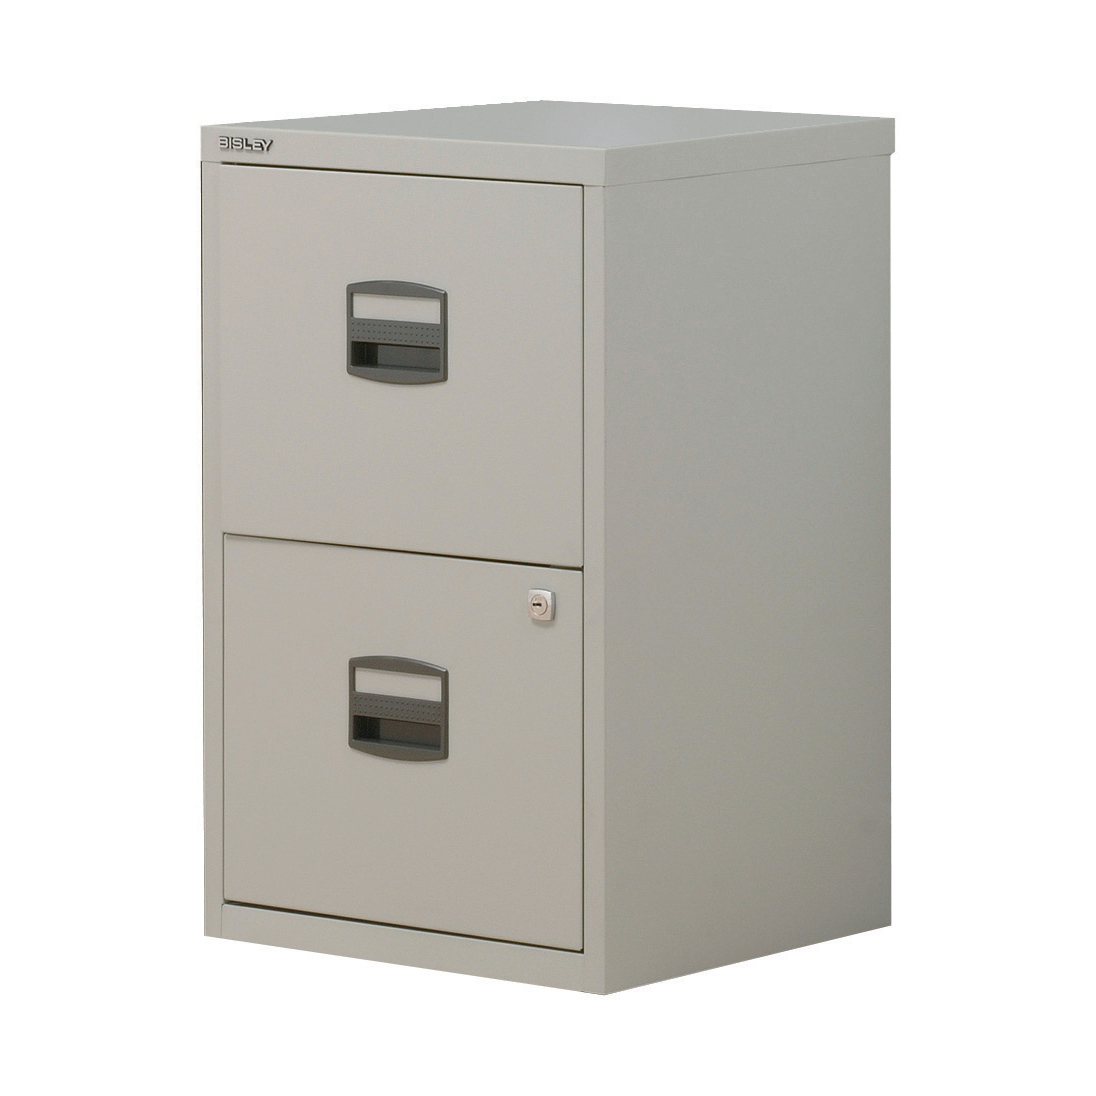 Trexus Soho A4 2 Drawer Cabinet Grey 413x400x672mm Ref